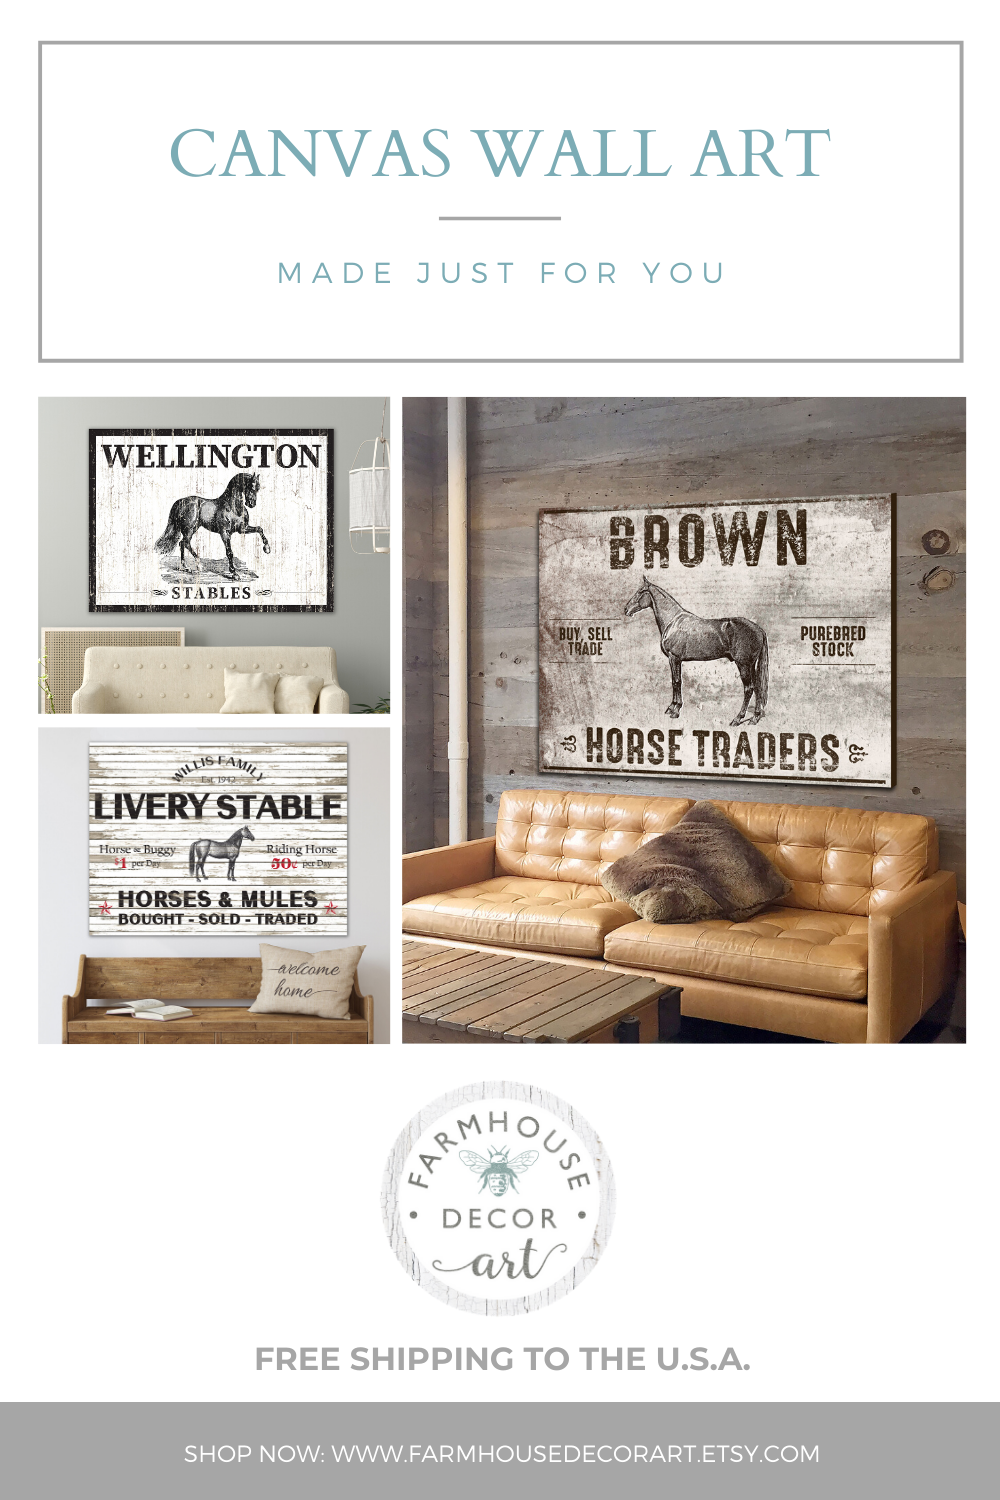 Rustic Country Wall Decor Personalized Horse Art Canvas Art By Farmhouse Decor Art Rustic Country Wall Decor Country Wall Decor Rustic Art Decor